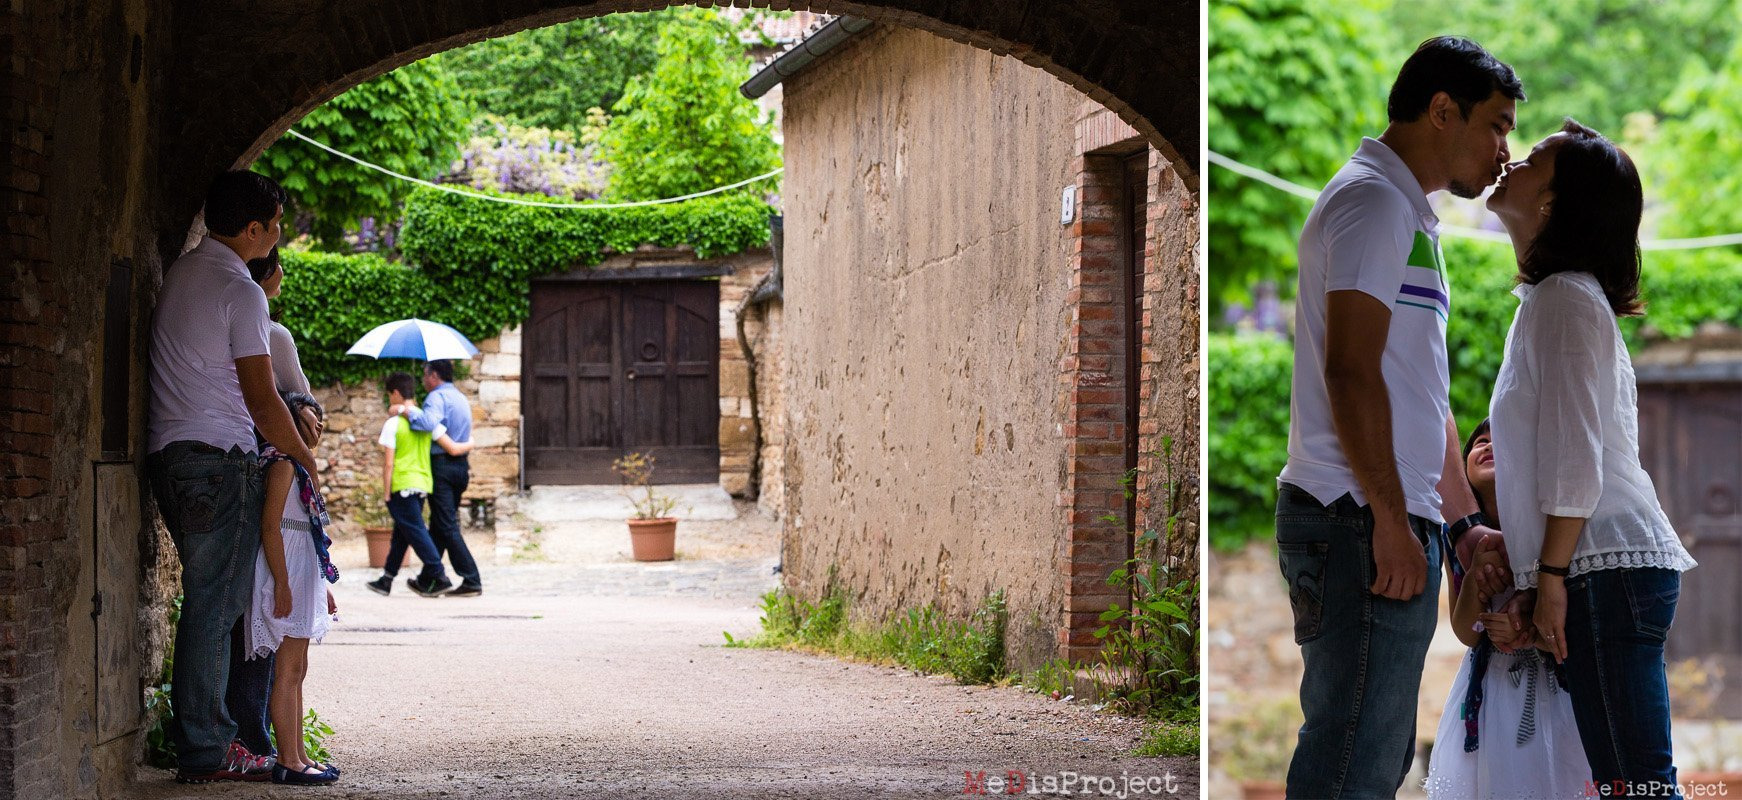 medisproject_family_photography_tuscany_025